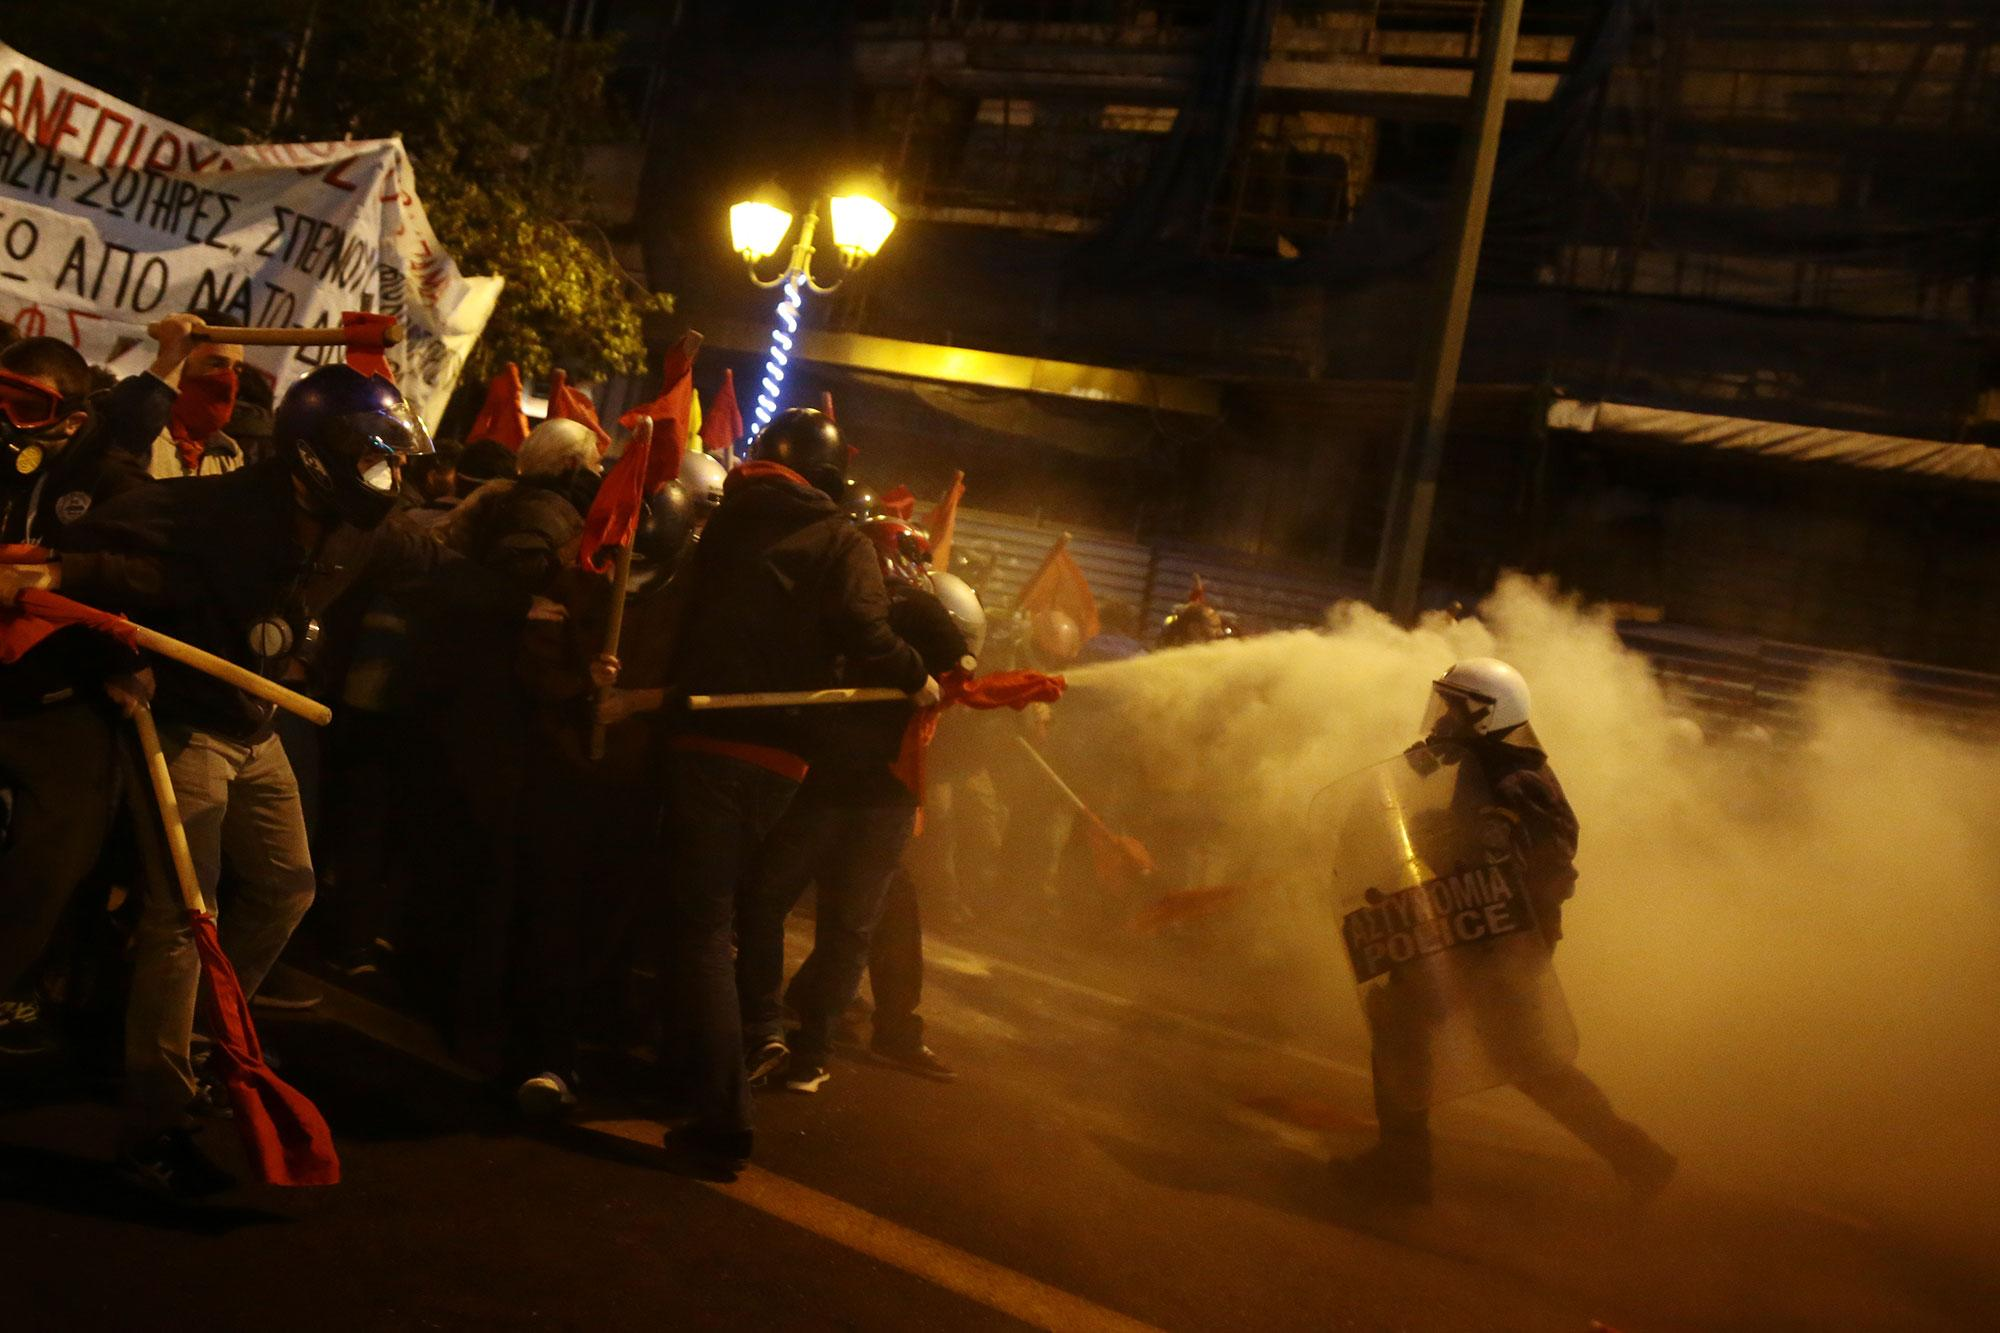 <p>Protesters clash with riot police during a demonstration against the visit of President Barack Obama, in Athens, Greece on Nov. 15, 2016. (Alkis Konstantinidis/Reuters) </p>